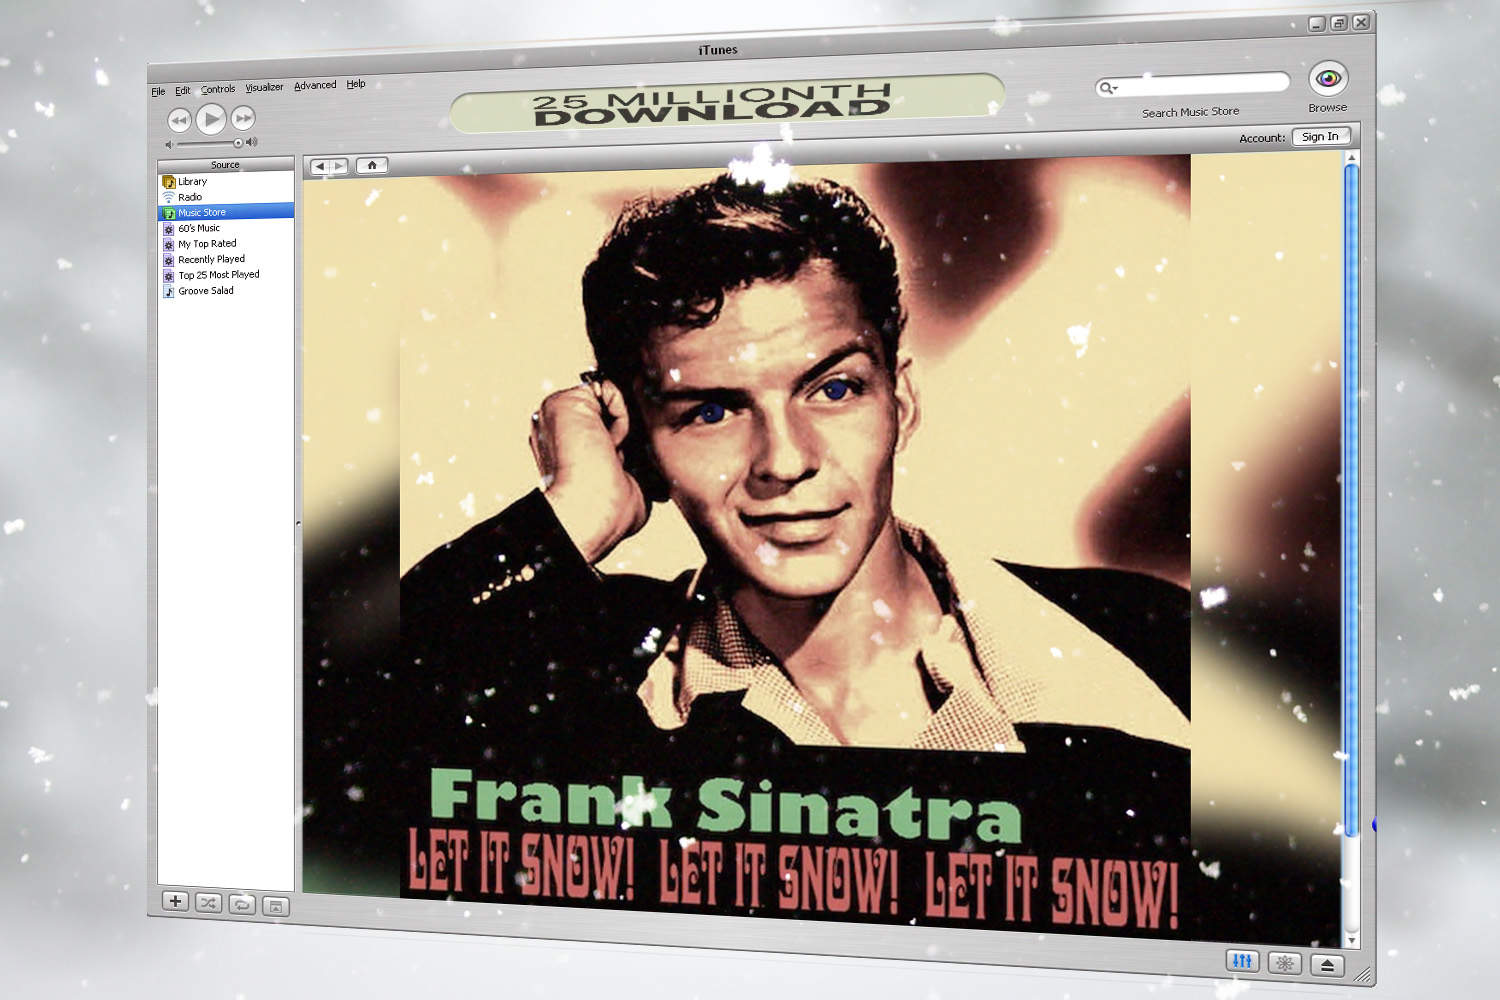 Today in Apple history: 'Let It Snow!' is iTunes' 25 millionth download.